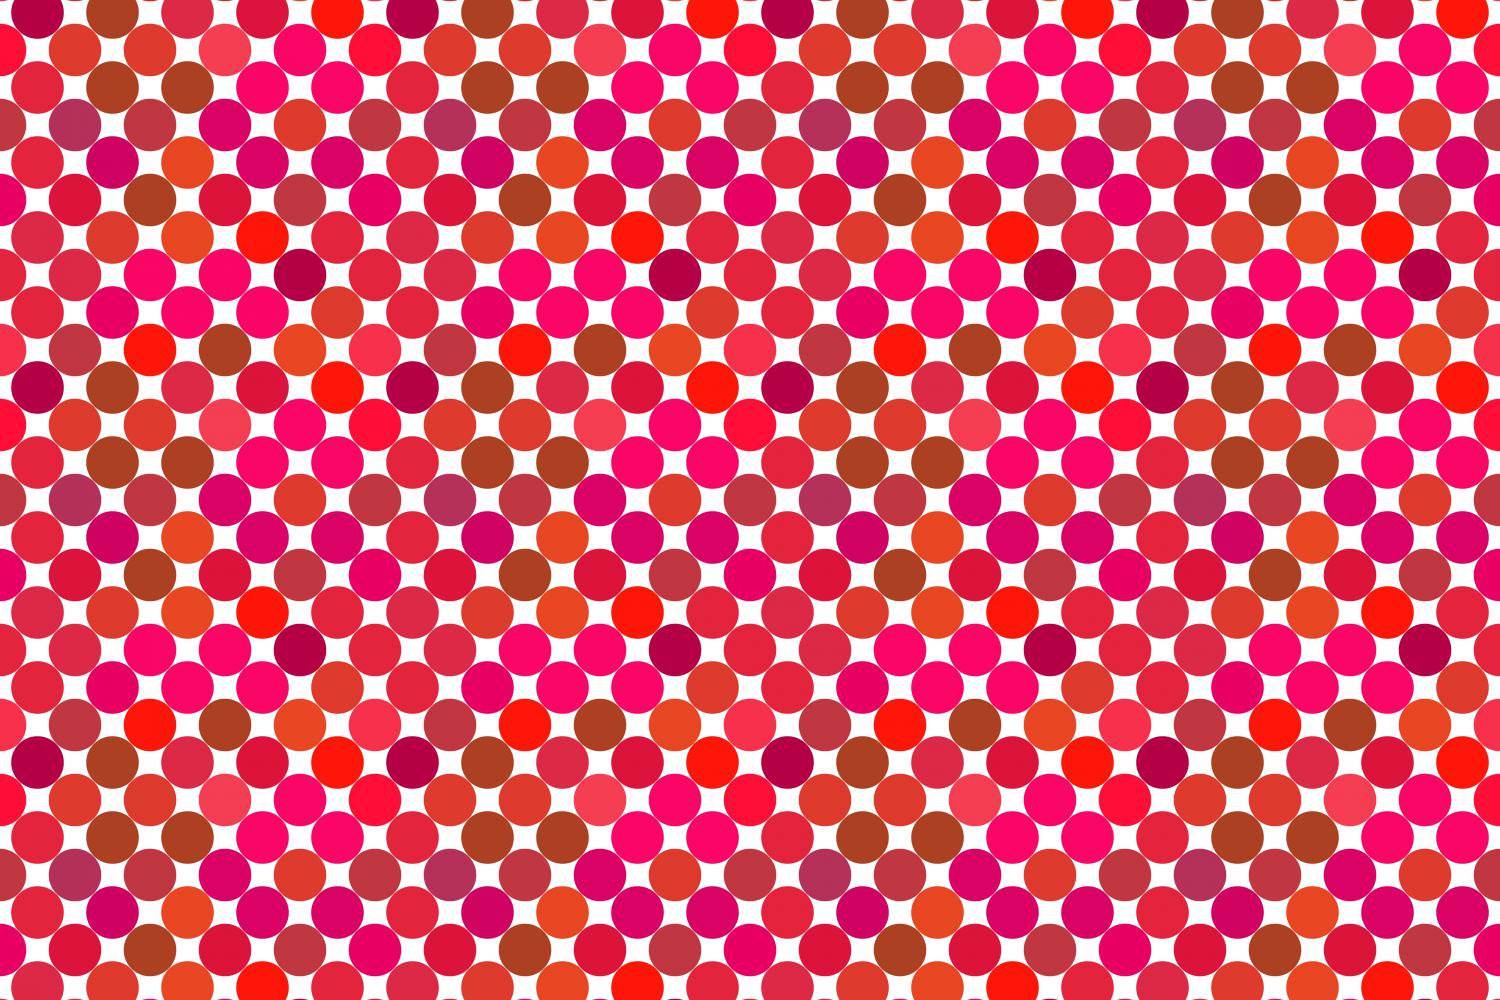 24 Seamless Red Dot Patterns example image 6